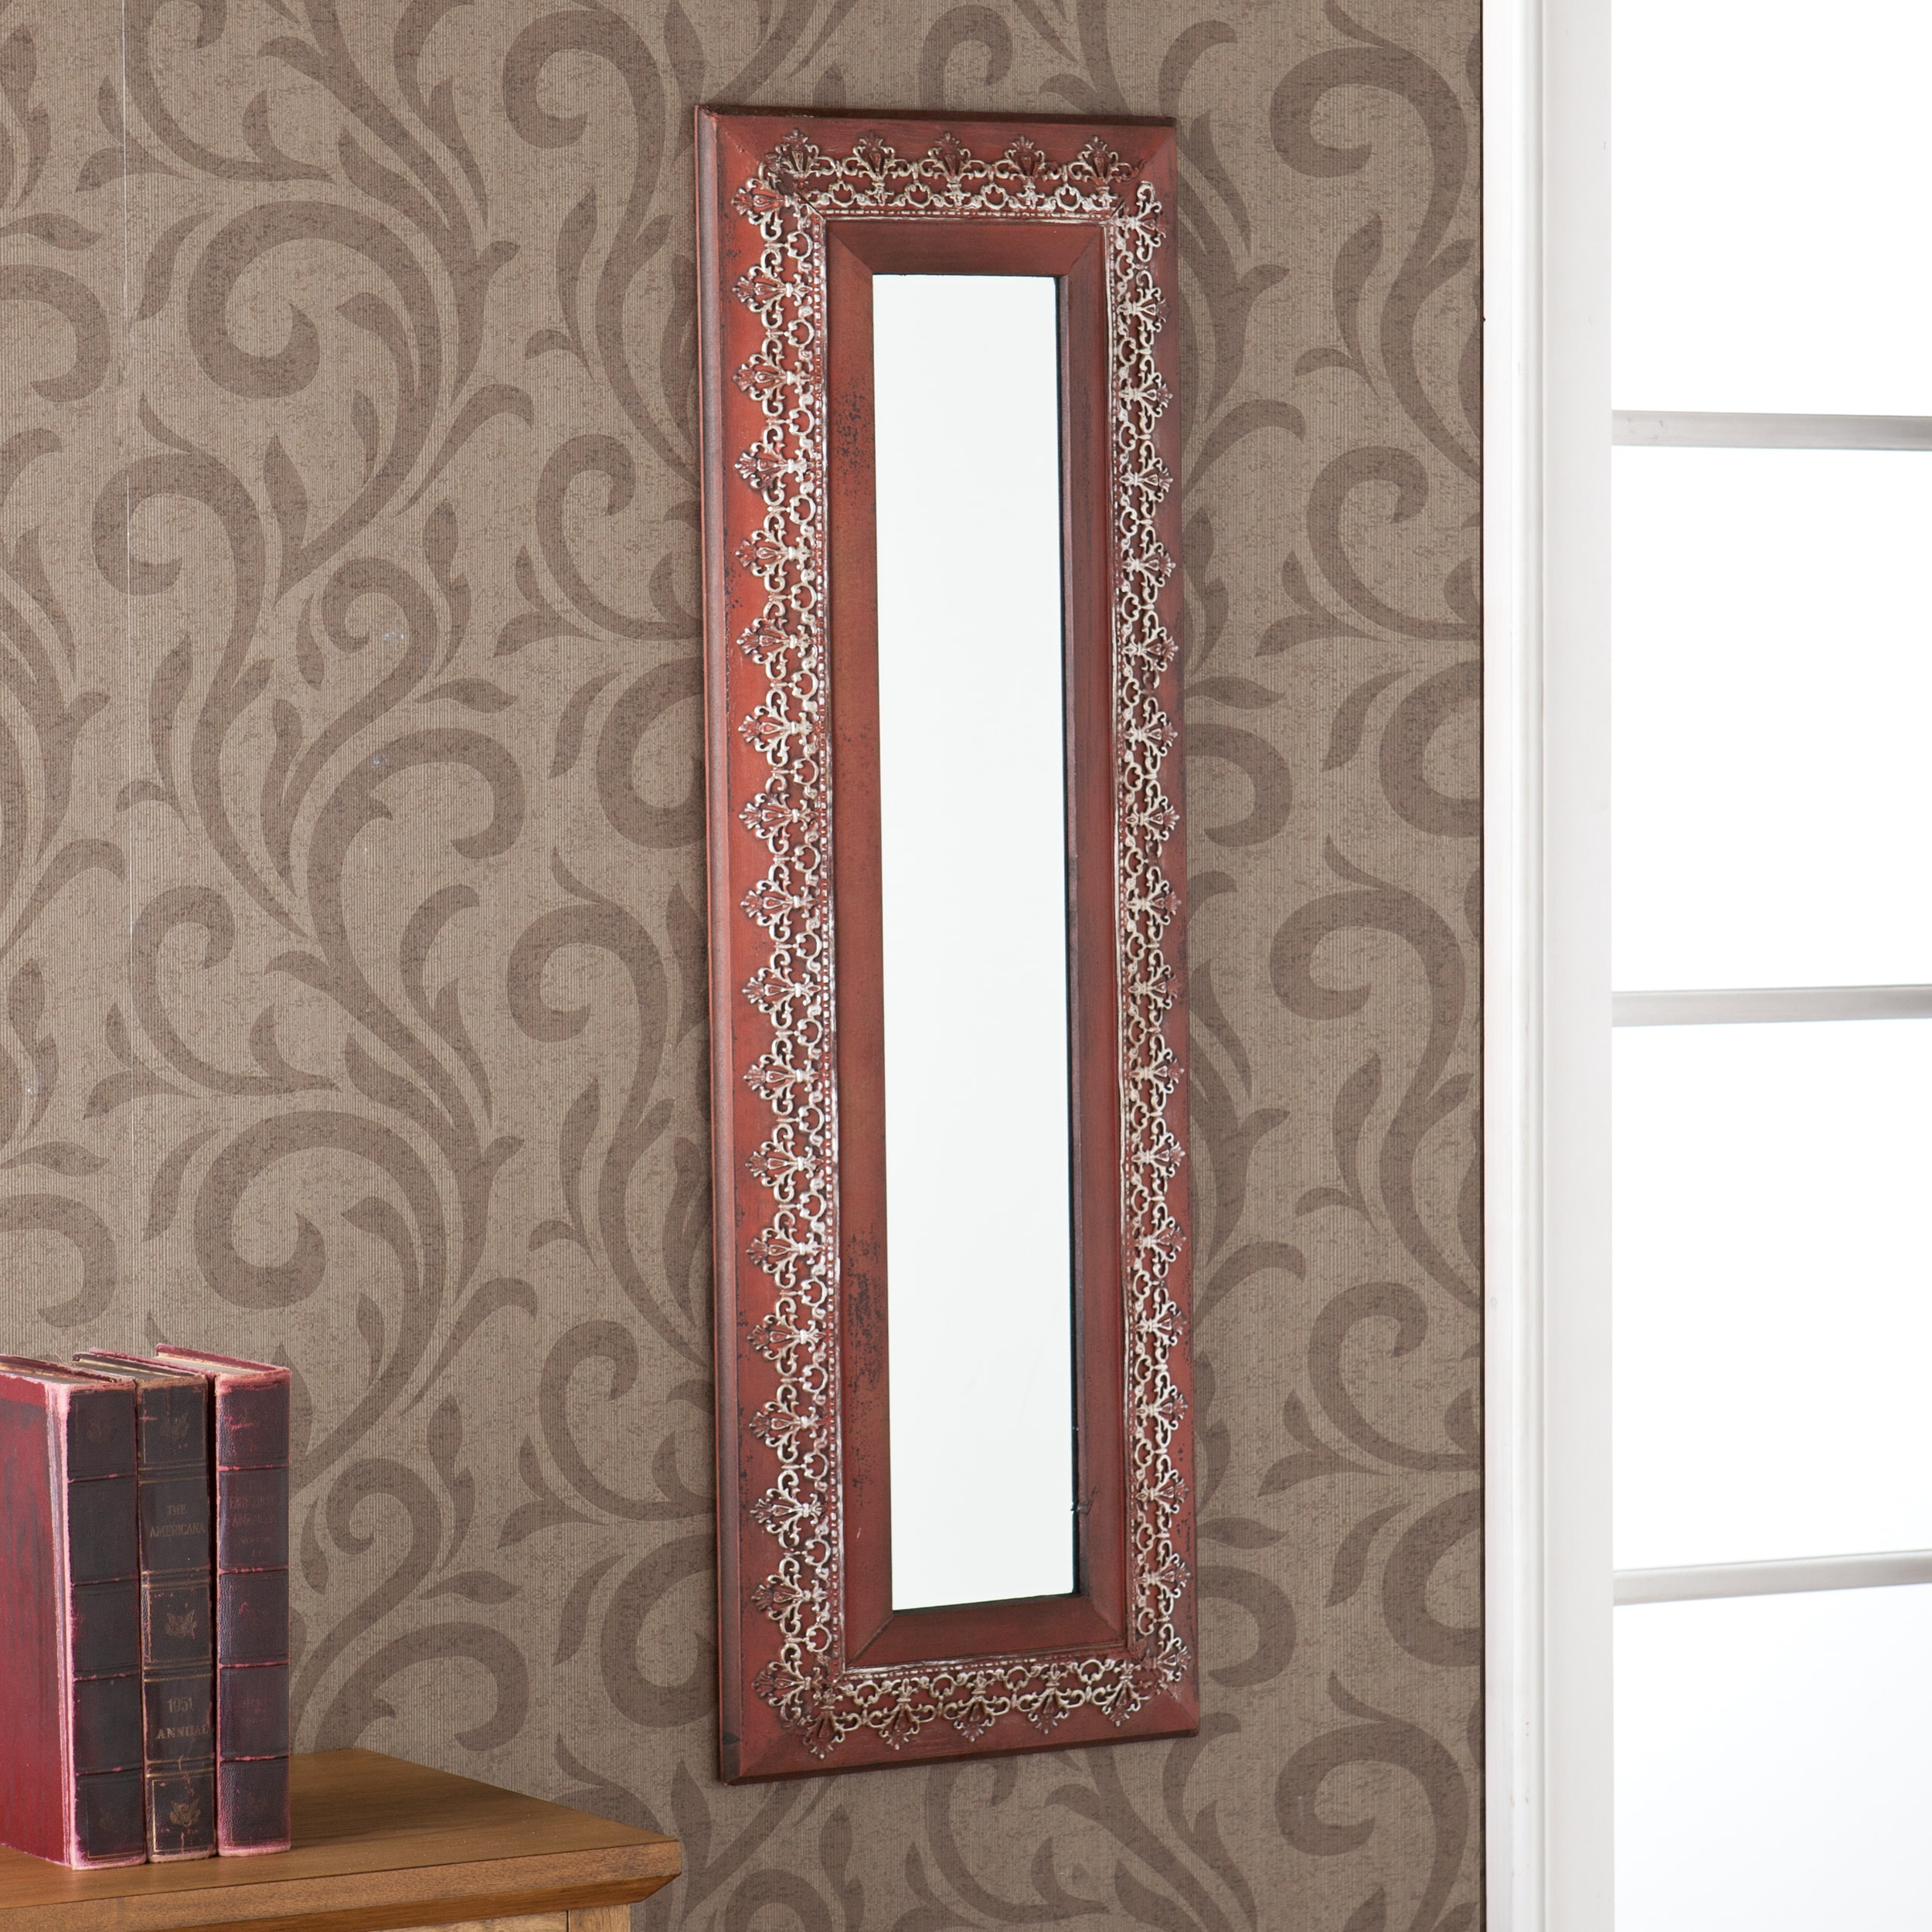 Upton Home Harcourt Decorative Mirror